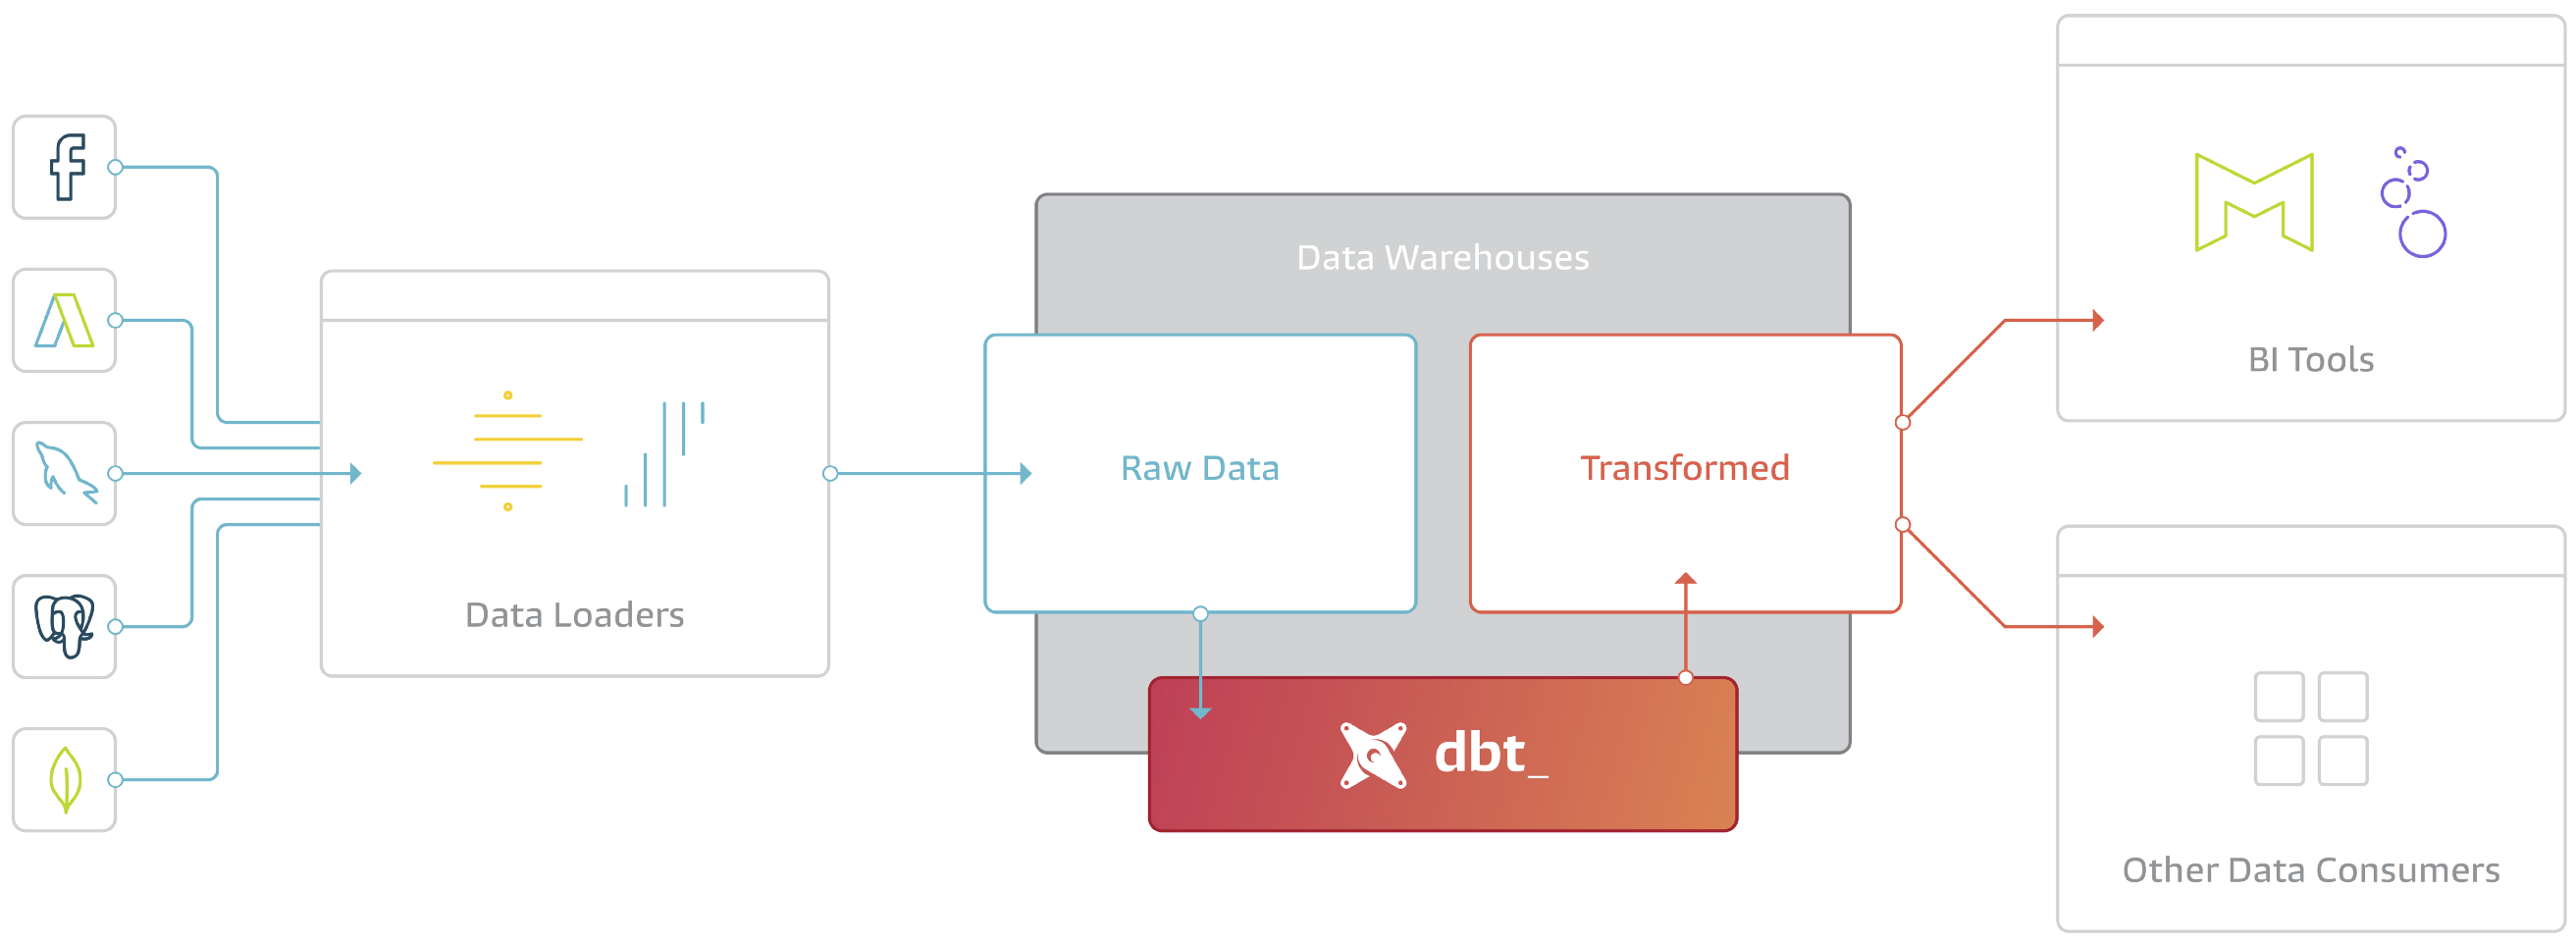 What, exactly, is dbt? - Fishtown Analytics